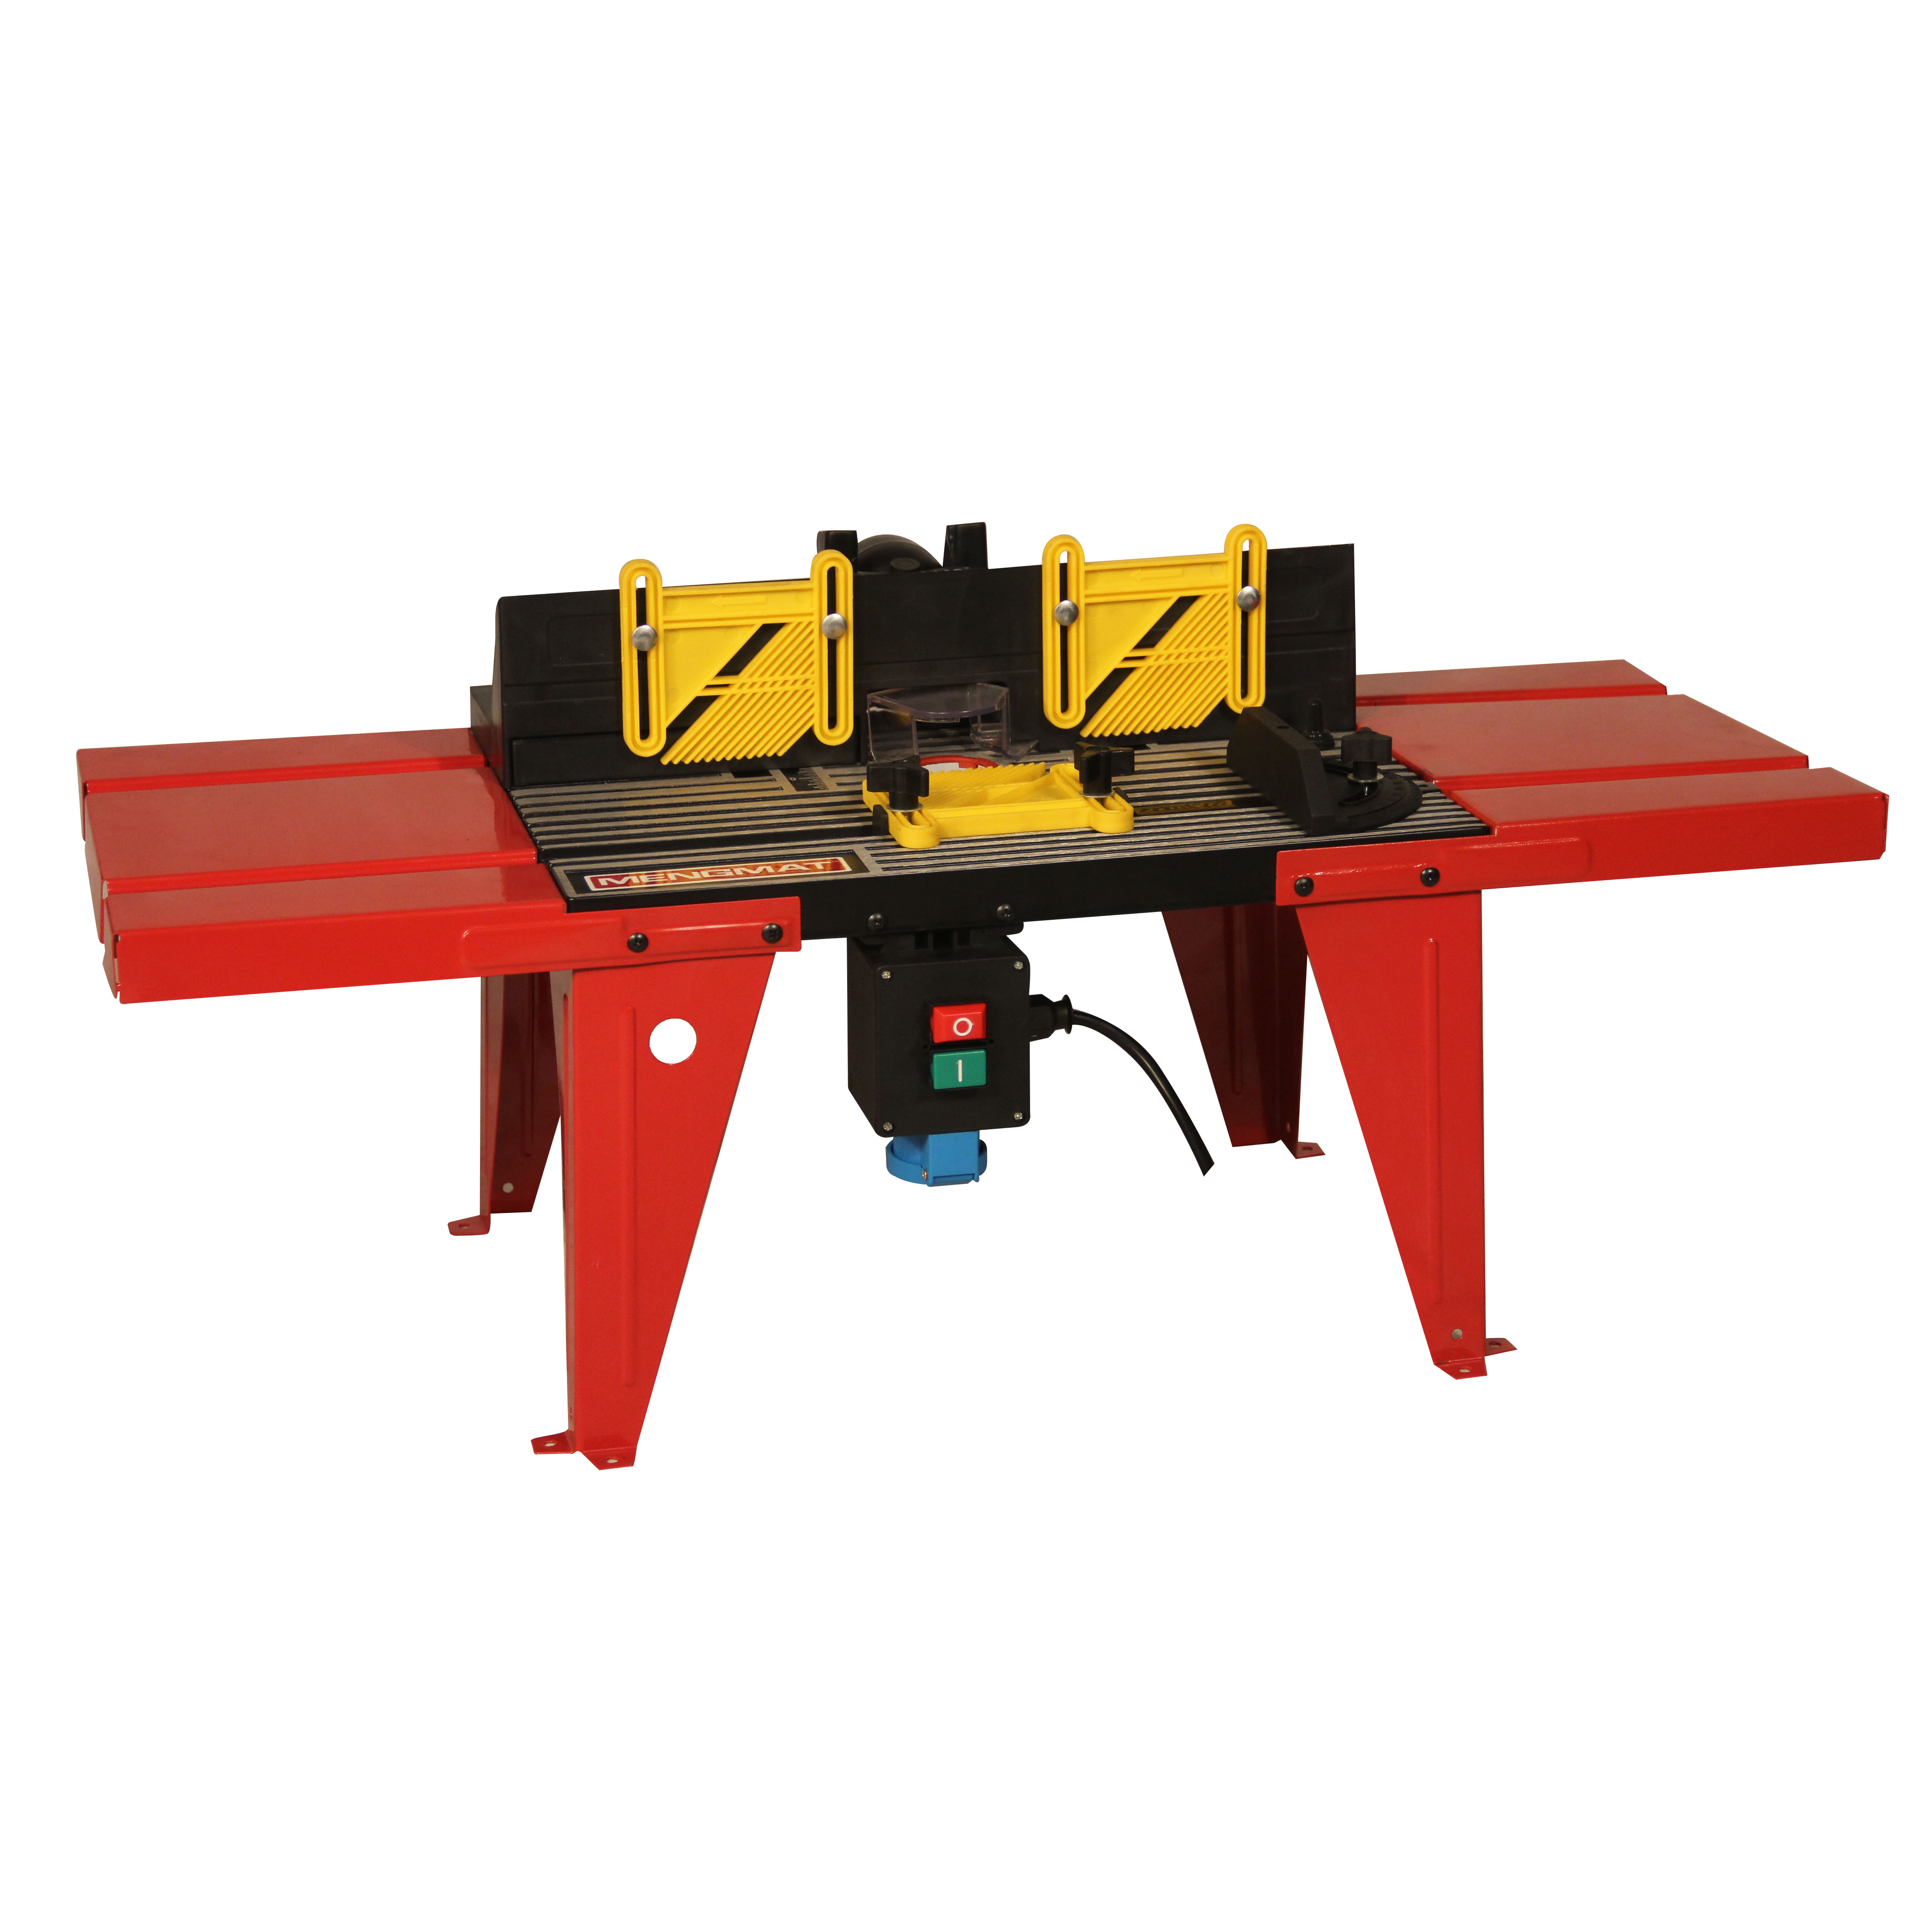 Hot Sale 150mm Rt150 Portable Wood Router Table Bench Buy Wood Router Table Bench Wood Bench Router Table Product On Alibaba Com